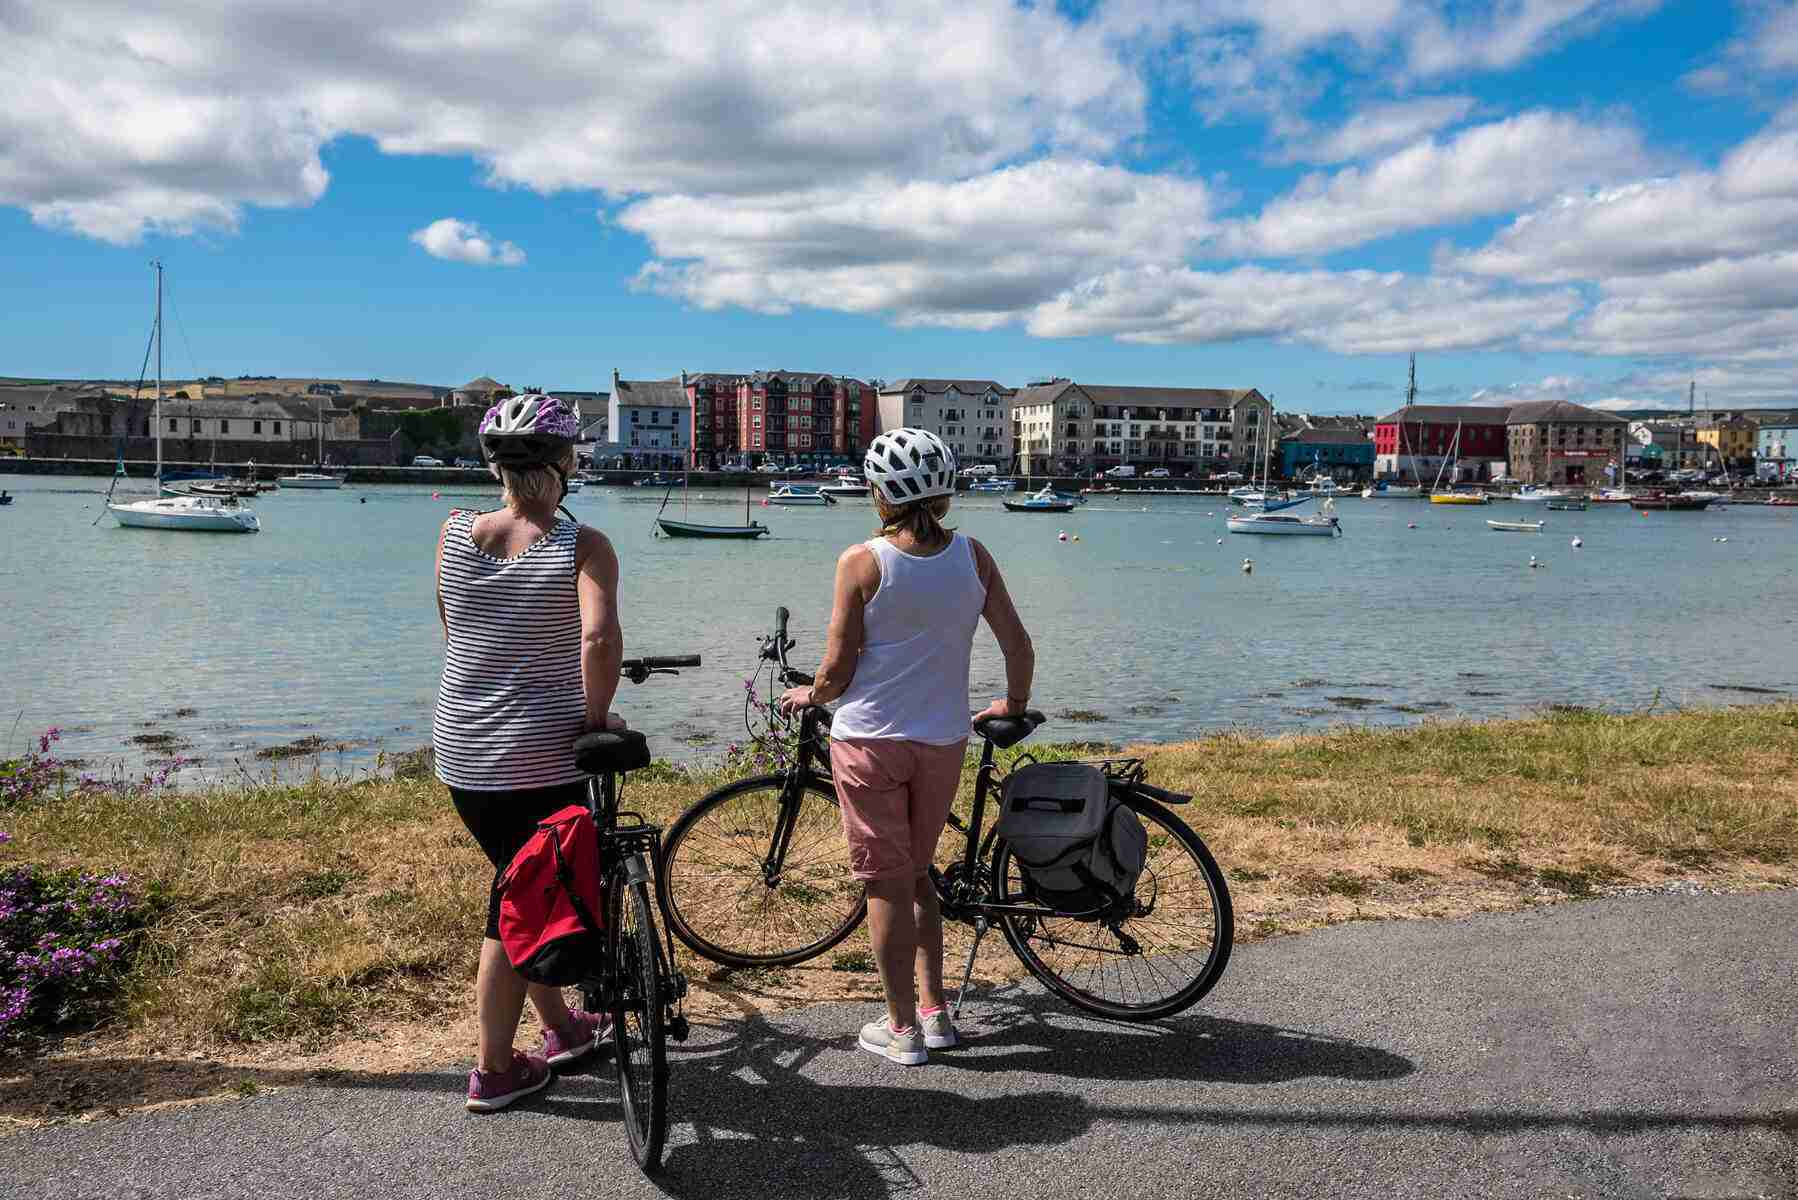 Two women standing with their bikes at the beginning of Waterford Greenway on the southern bank of the River Suir in Waterford City